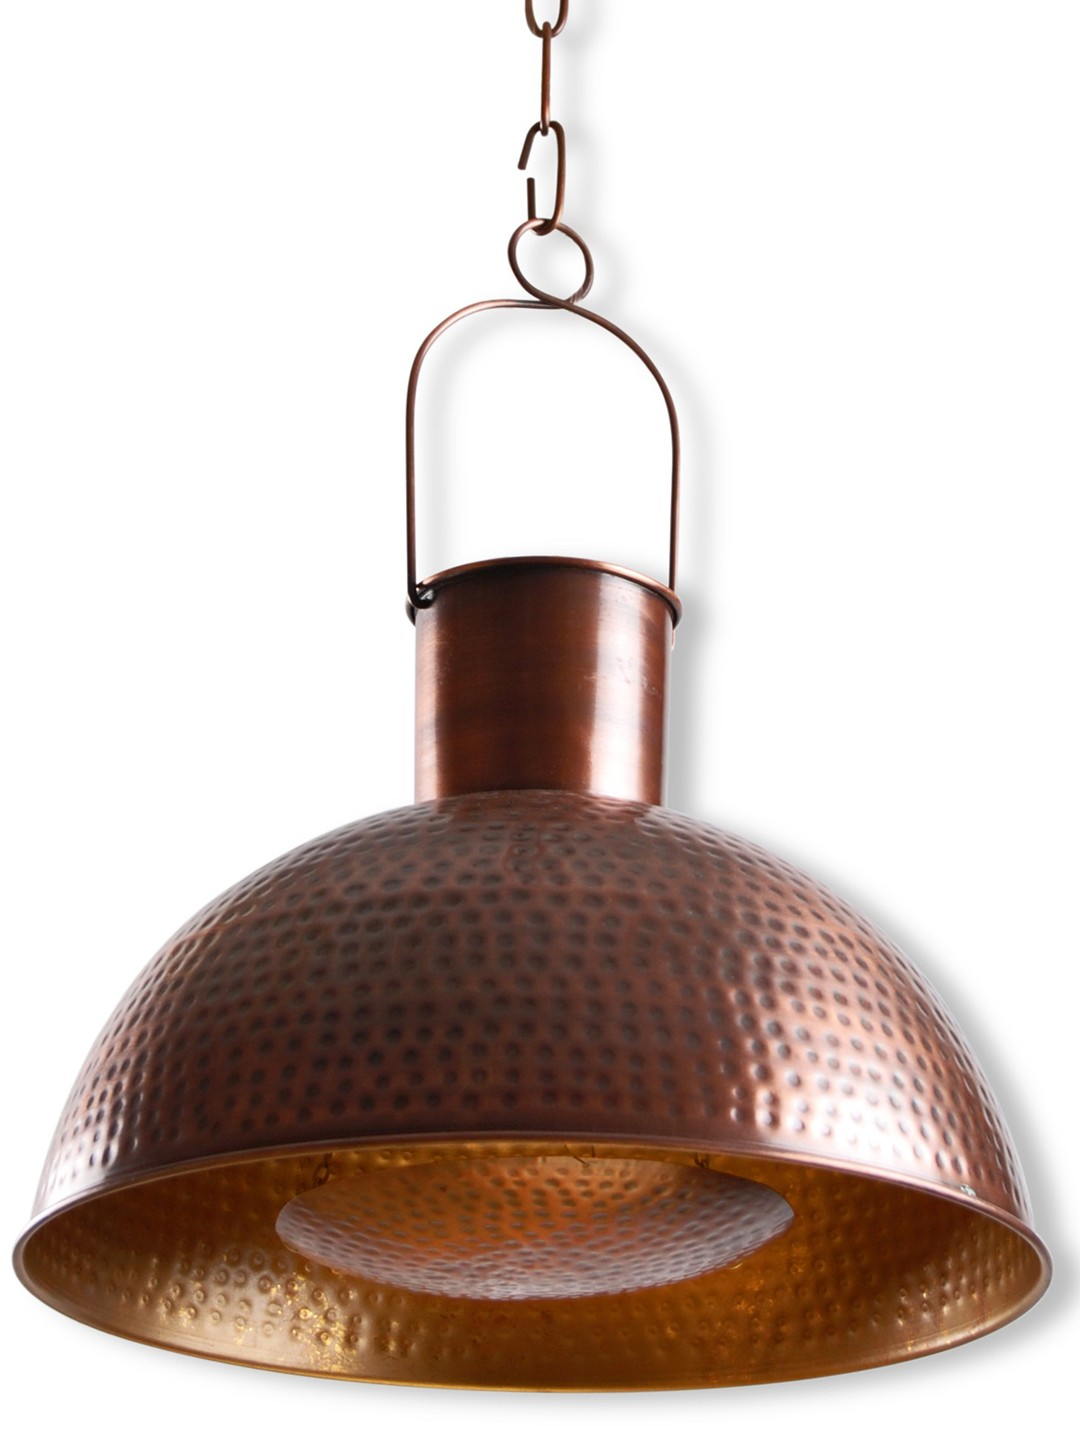 Hand Hammered Copper Chimney 15 inches Dome Pendant Light